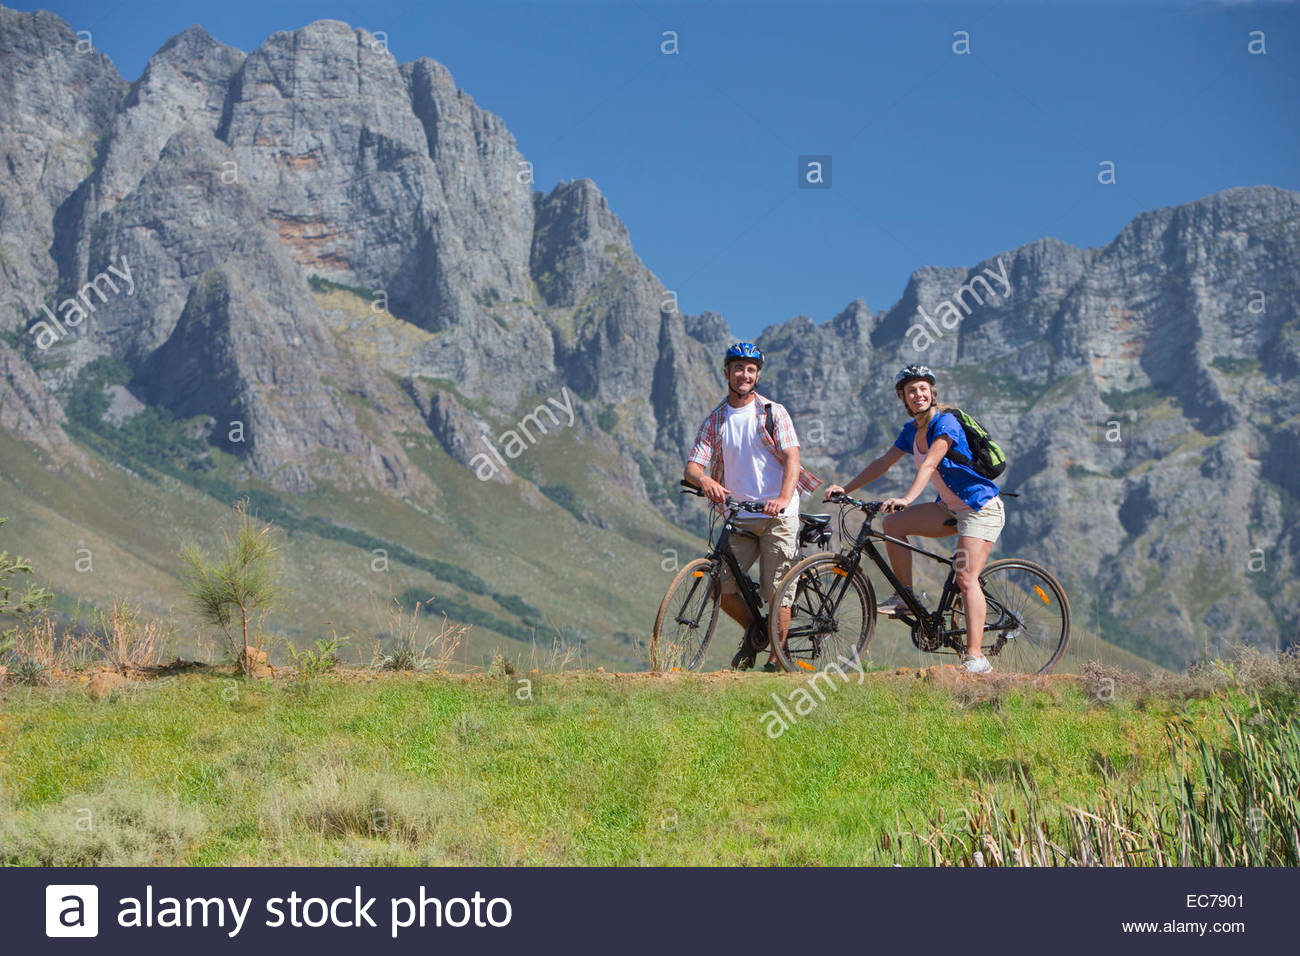 Couple cycling on mountain track - Stock Image